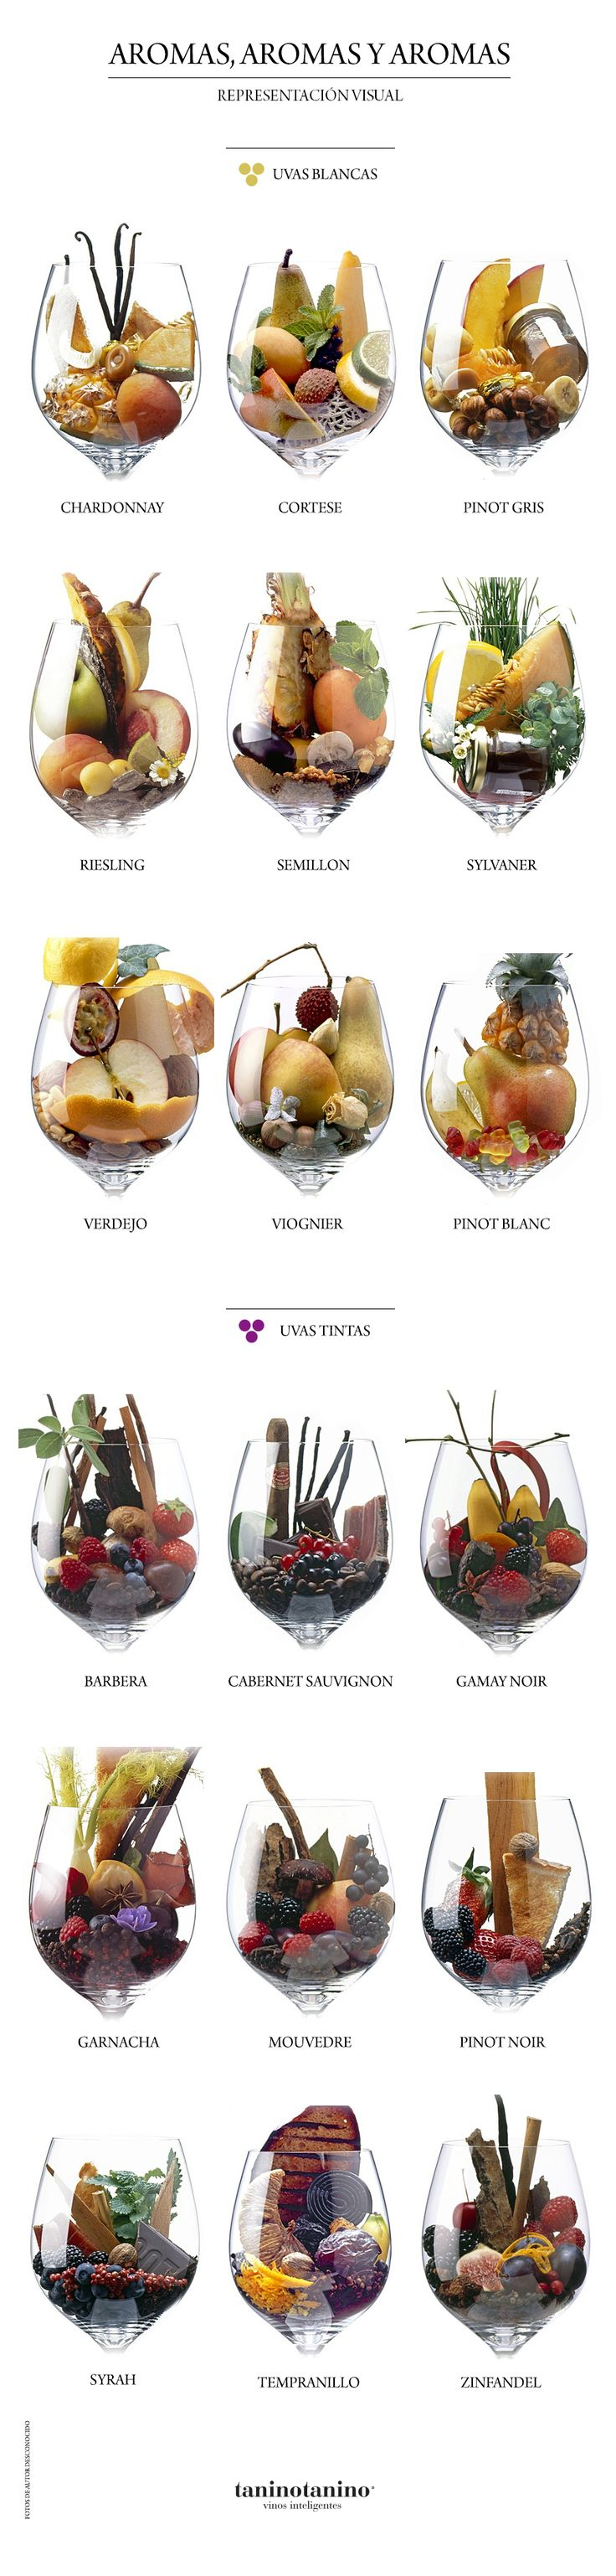 "Wine Infographic -  The flavors of wine. www.LiquorList.com ""The Marketplace for Adults with Taste!"" @LiquorListcom   #LiquorList.com"